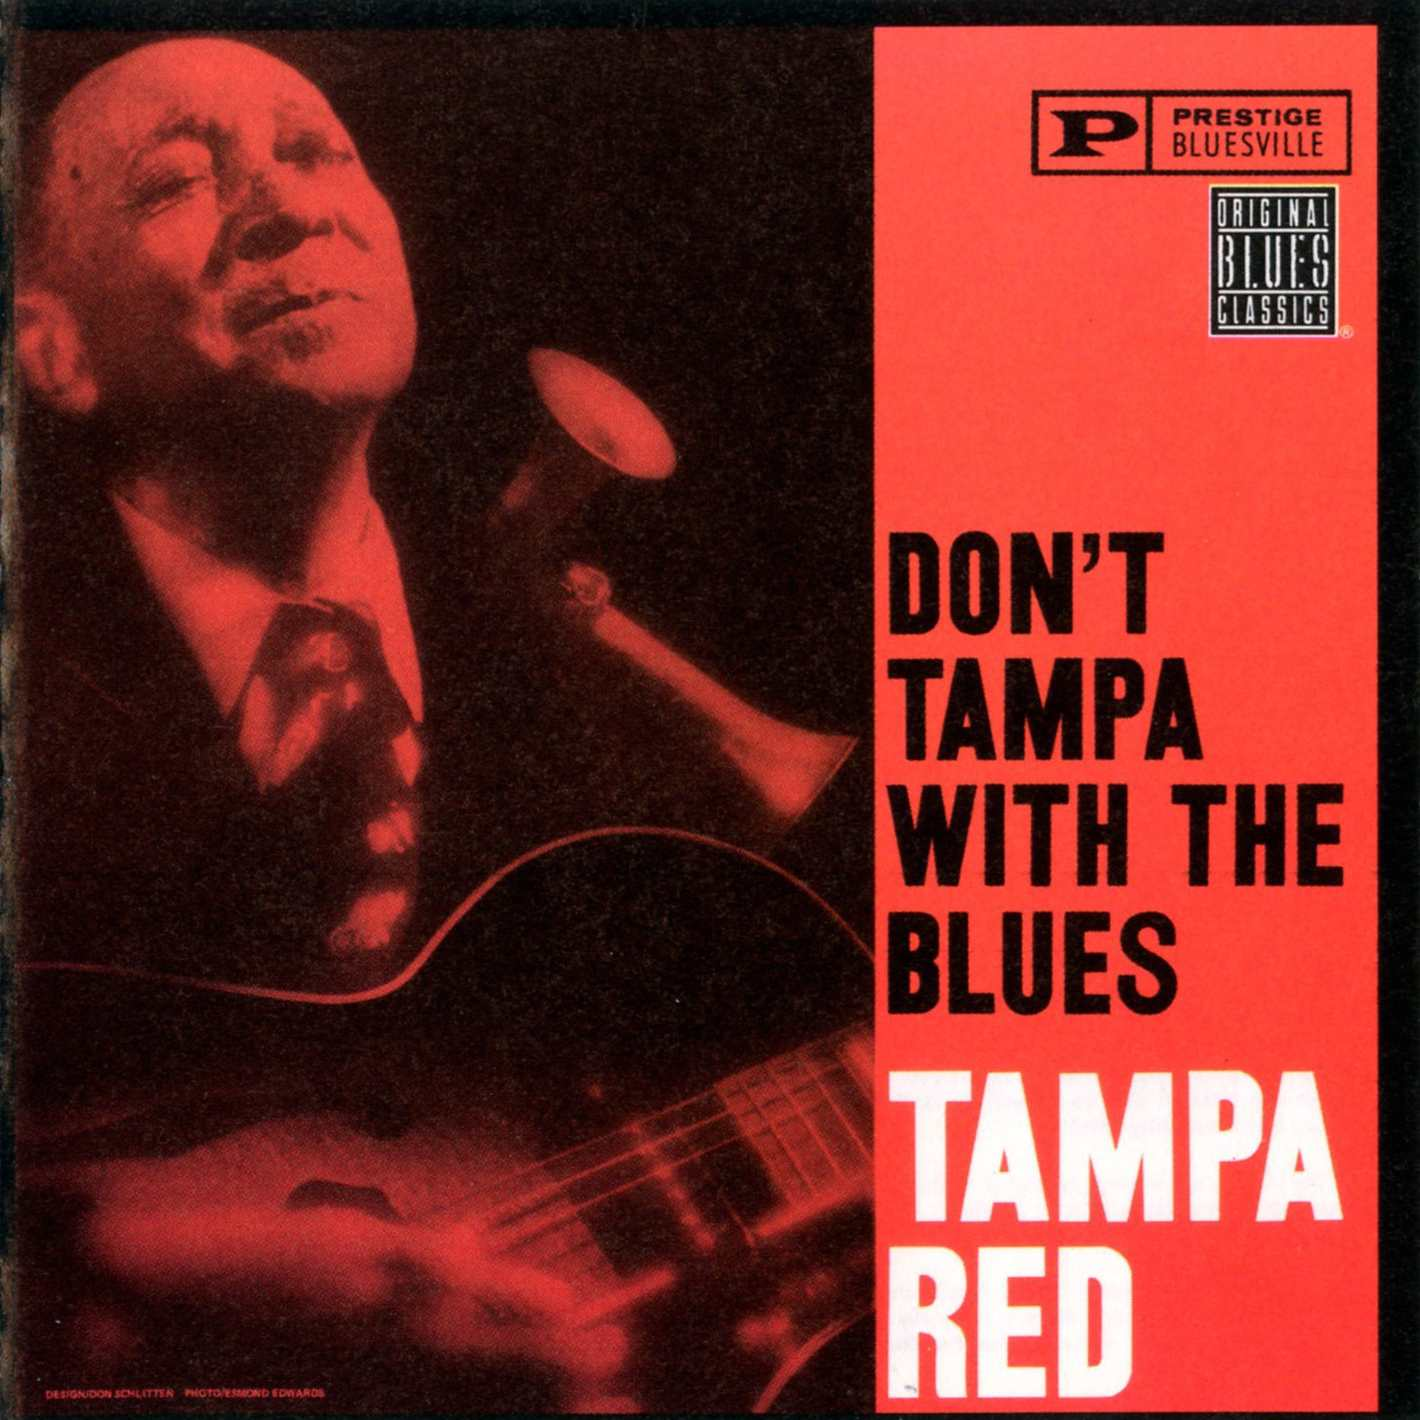 Tampa Red's Don't Tampa with the Blues